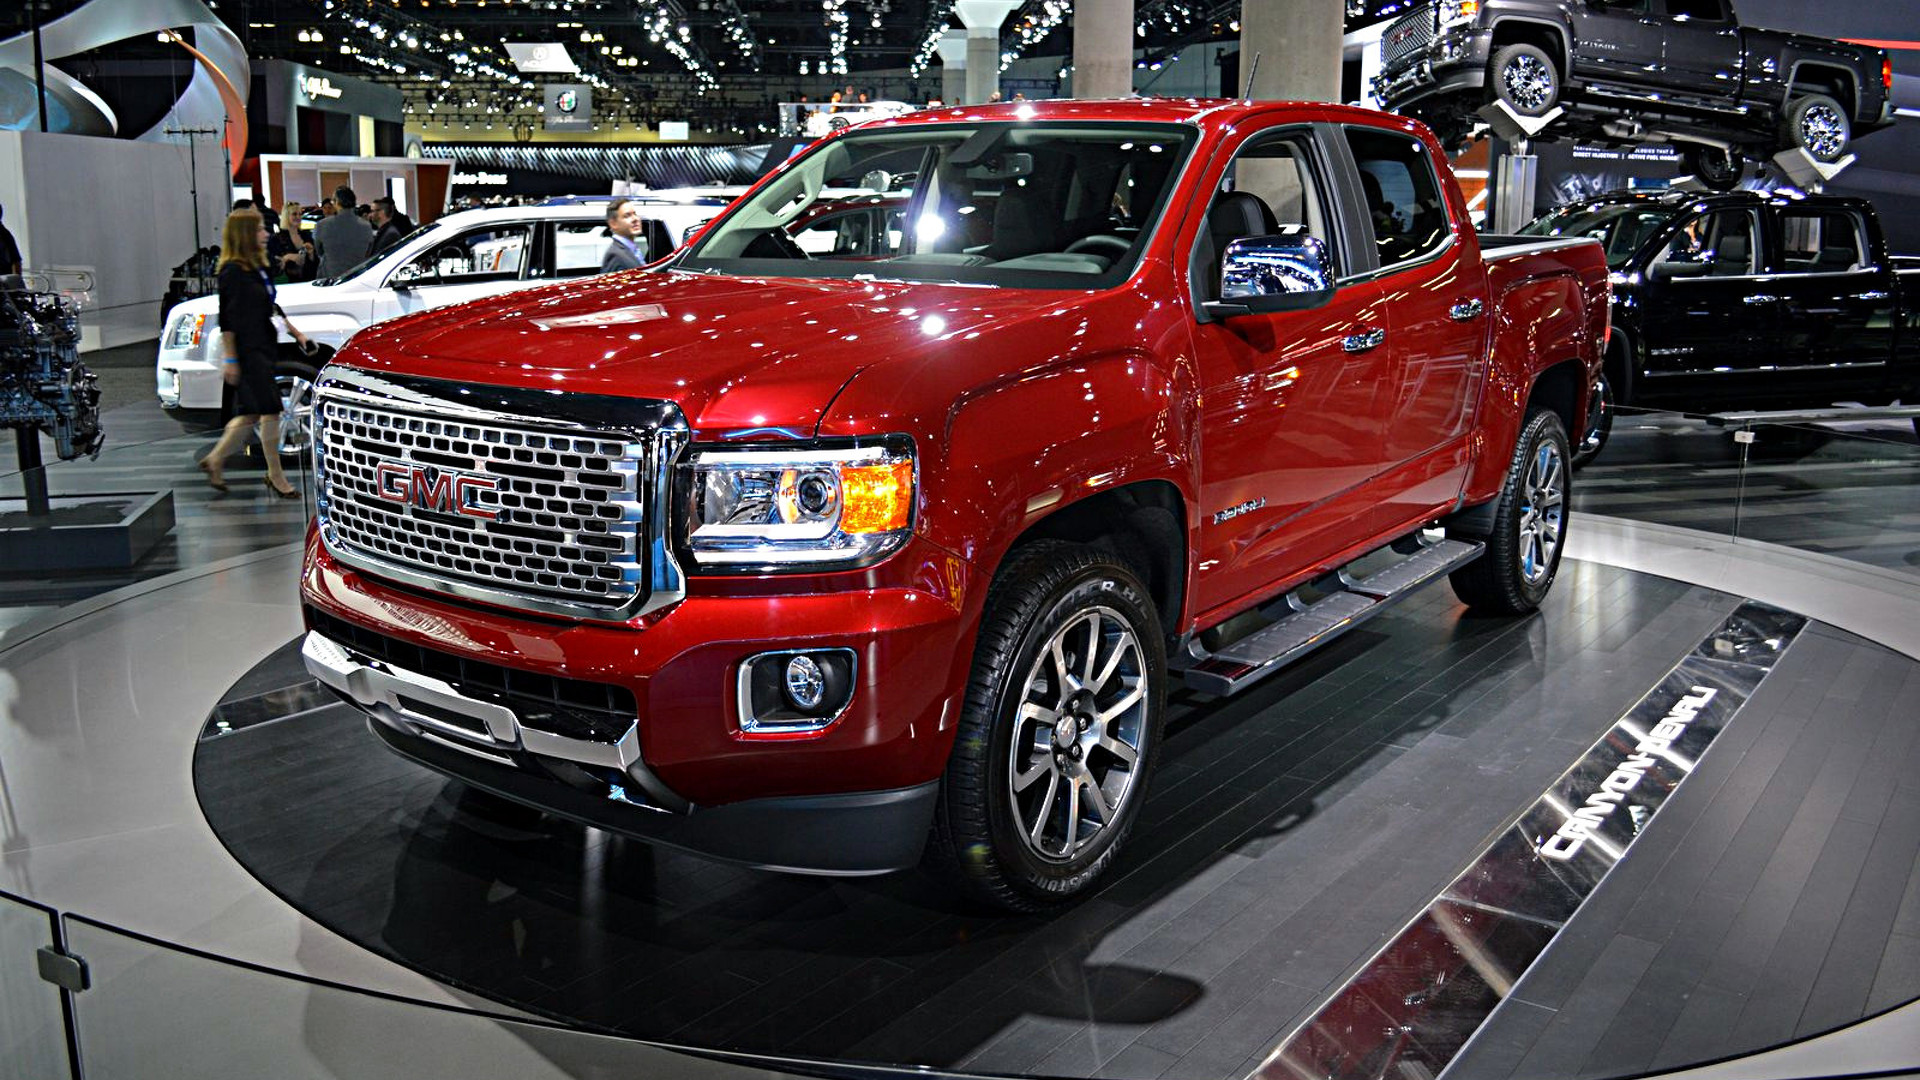 2017 Gmc Canyon Denali Unveiled As The First Premium Mid Size Pickup